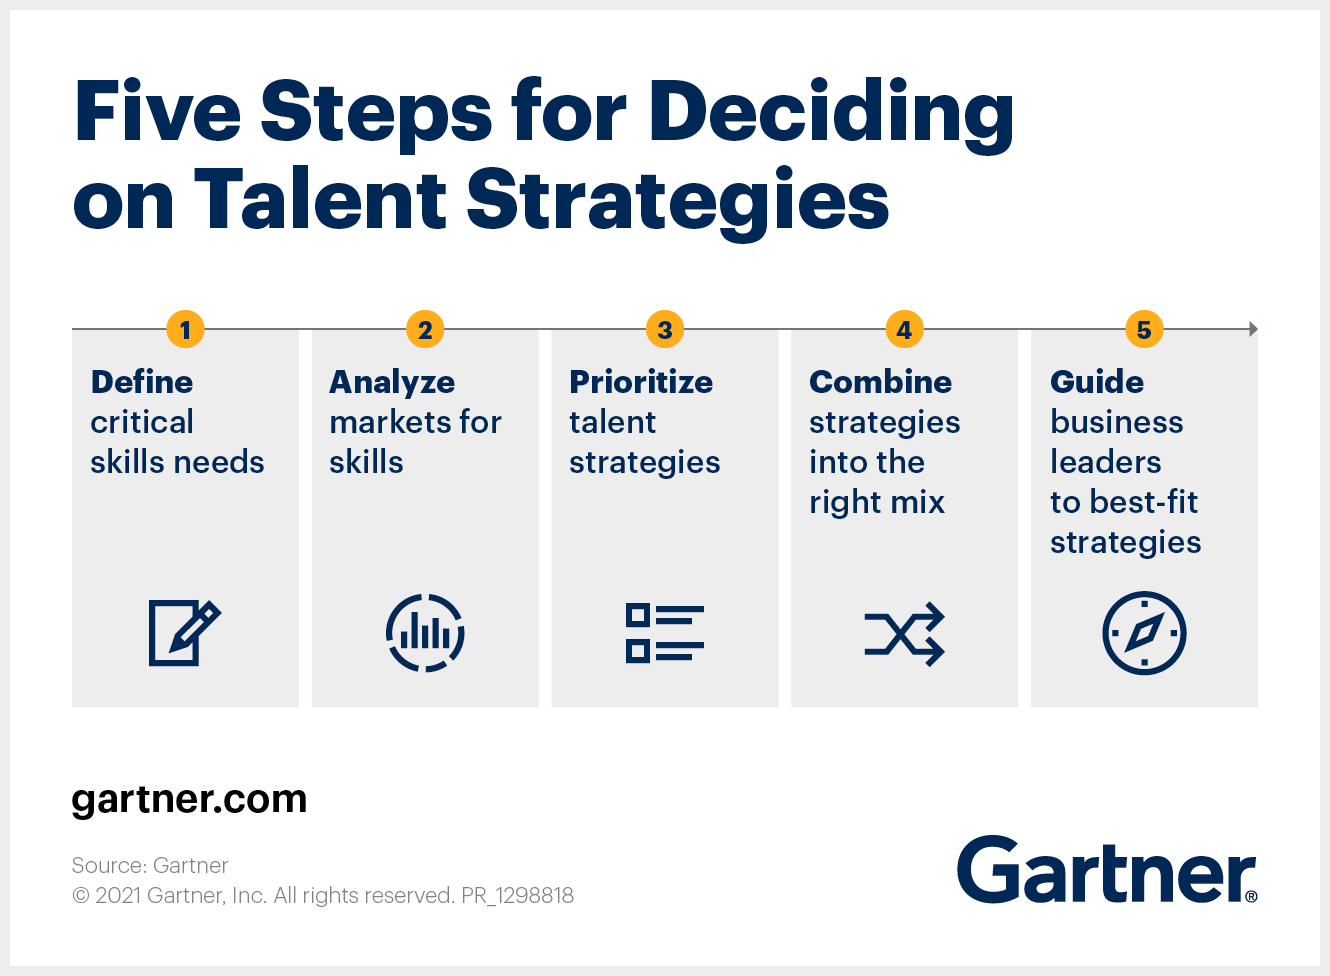 Five Steps for Deciding on Talent Strategies